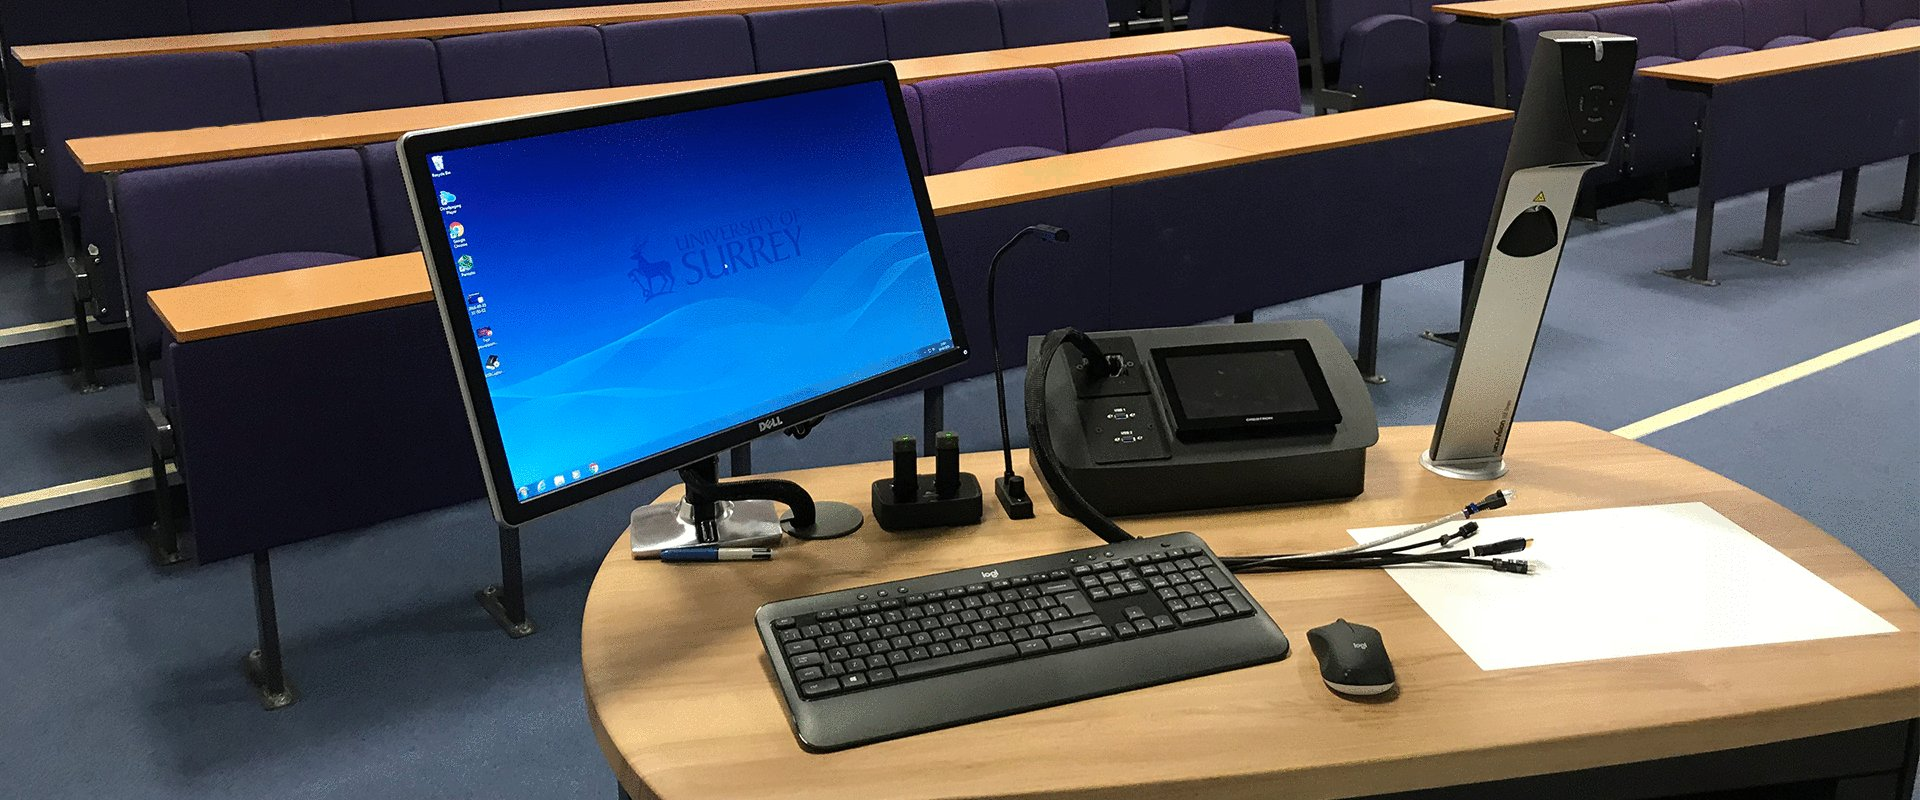 UNICOL TO HELP CENTRALISE AV CONTROLS IN EDUCATION